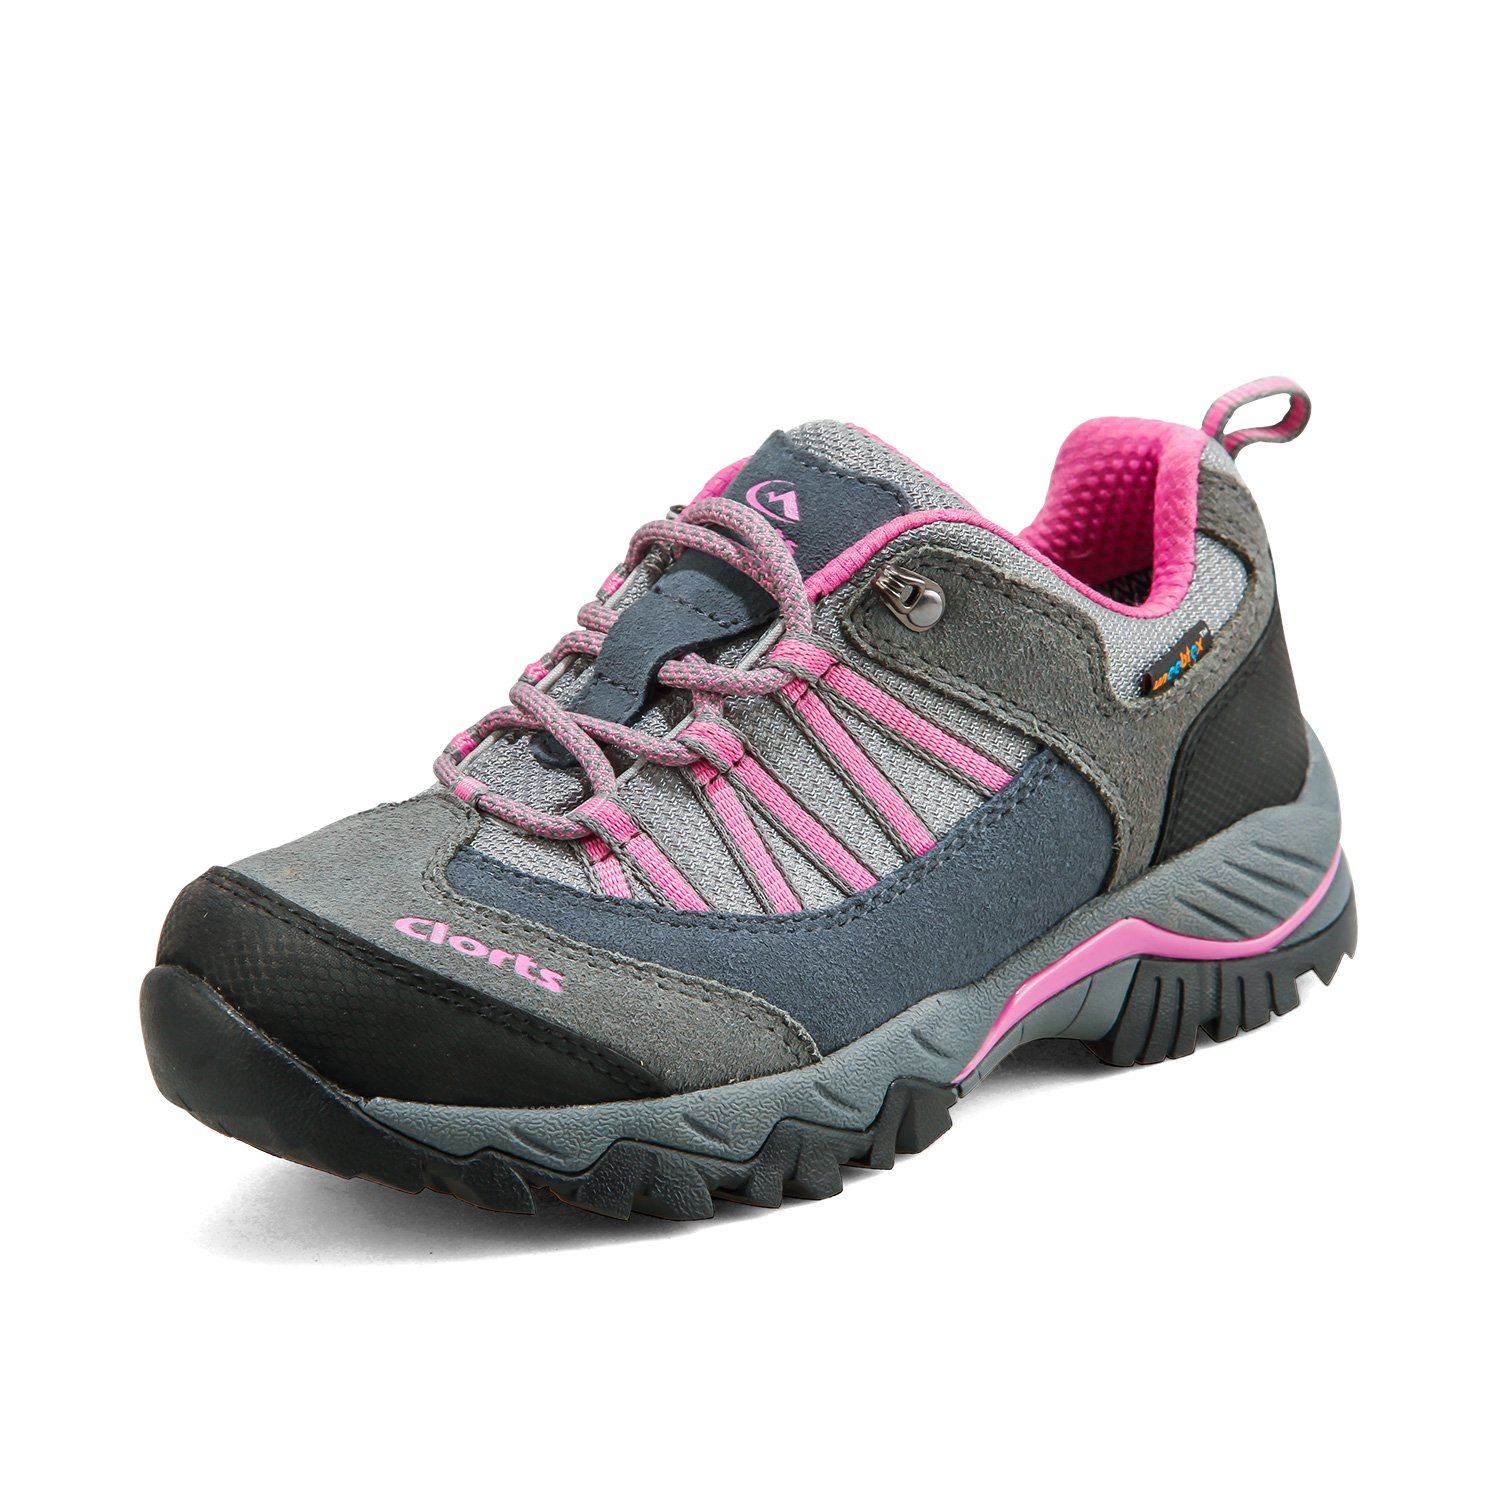 Mountbeyond Womens Waterproof Hiking Shoes Trail Running Boot Outdoor Sports Breathable